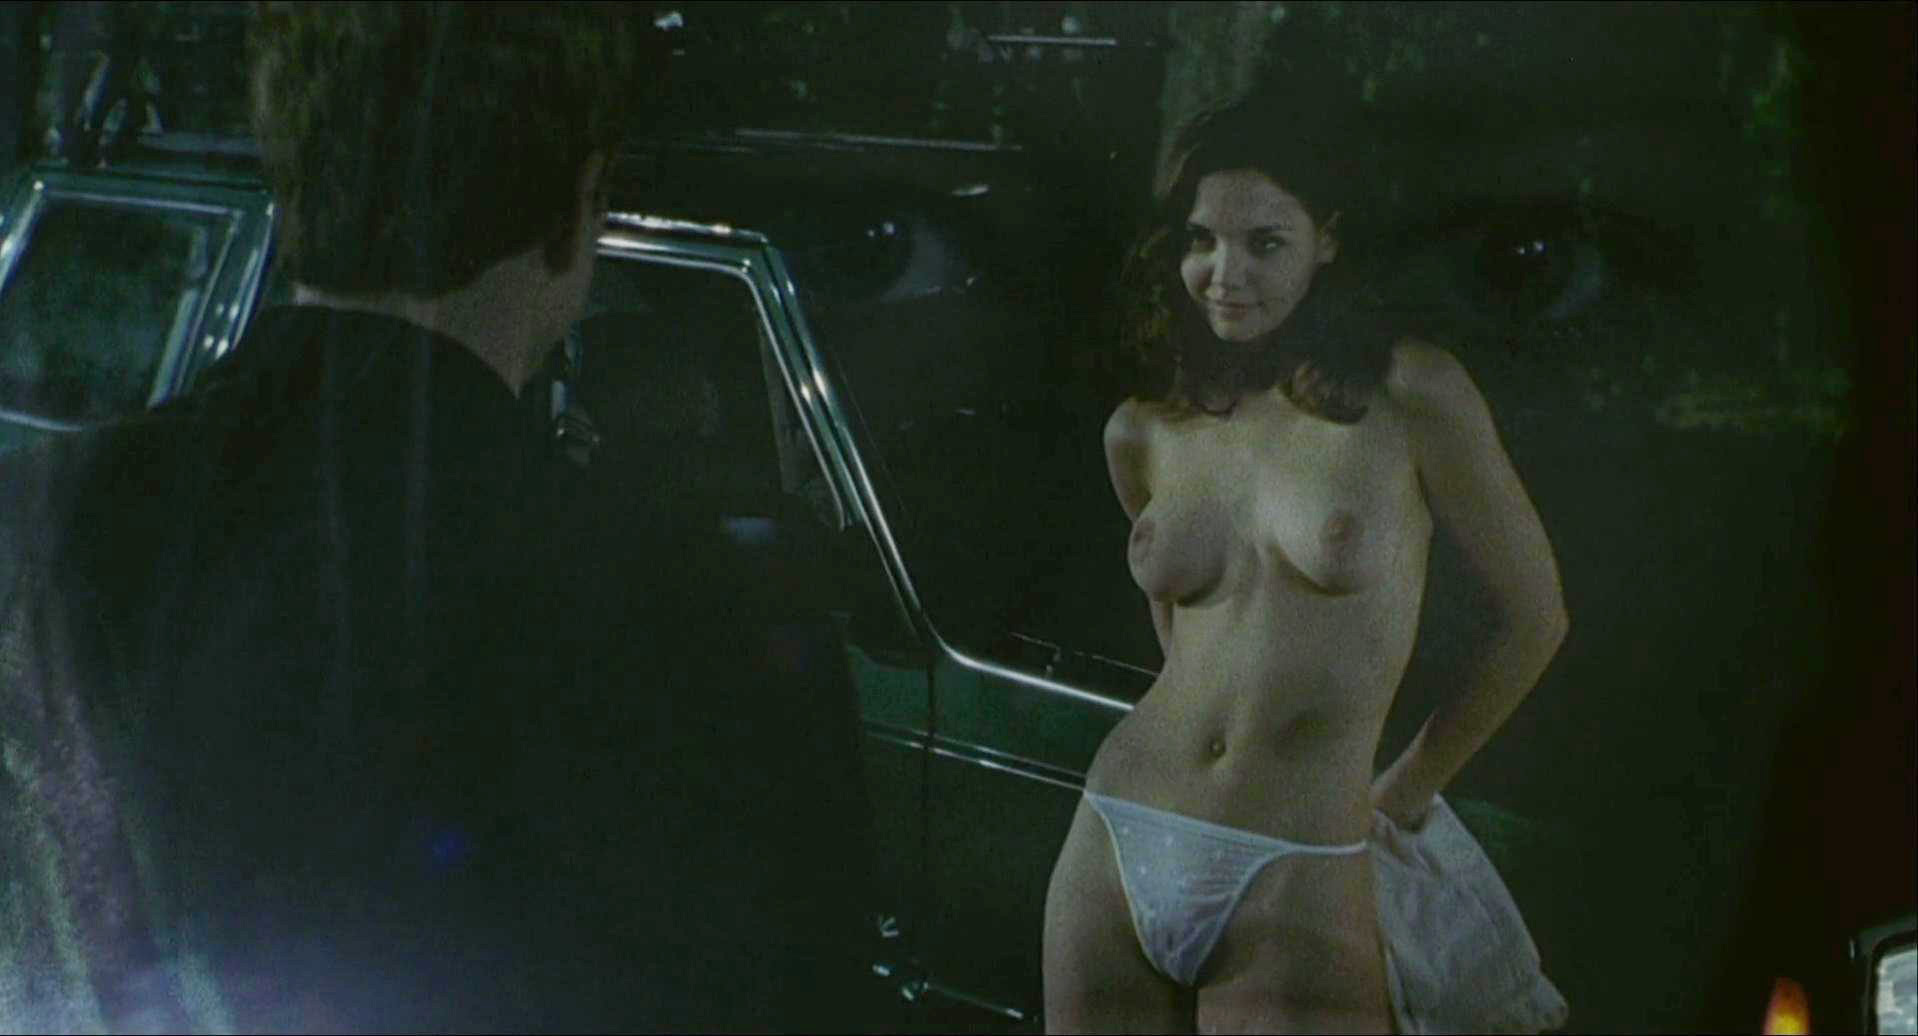 Katie holmes nude scene in the gift picture